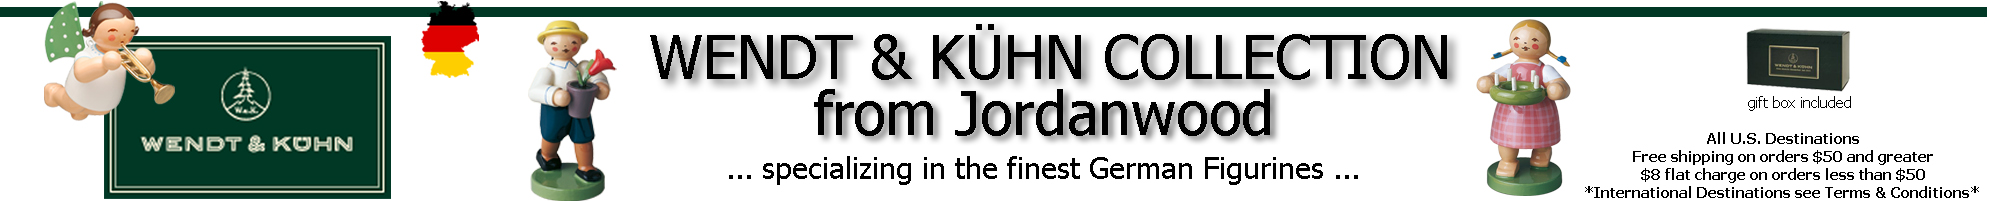 Wendt & Kühn Collection from Jordanwood Site Header Image